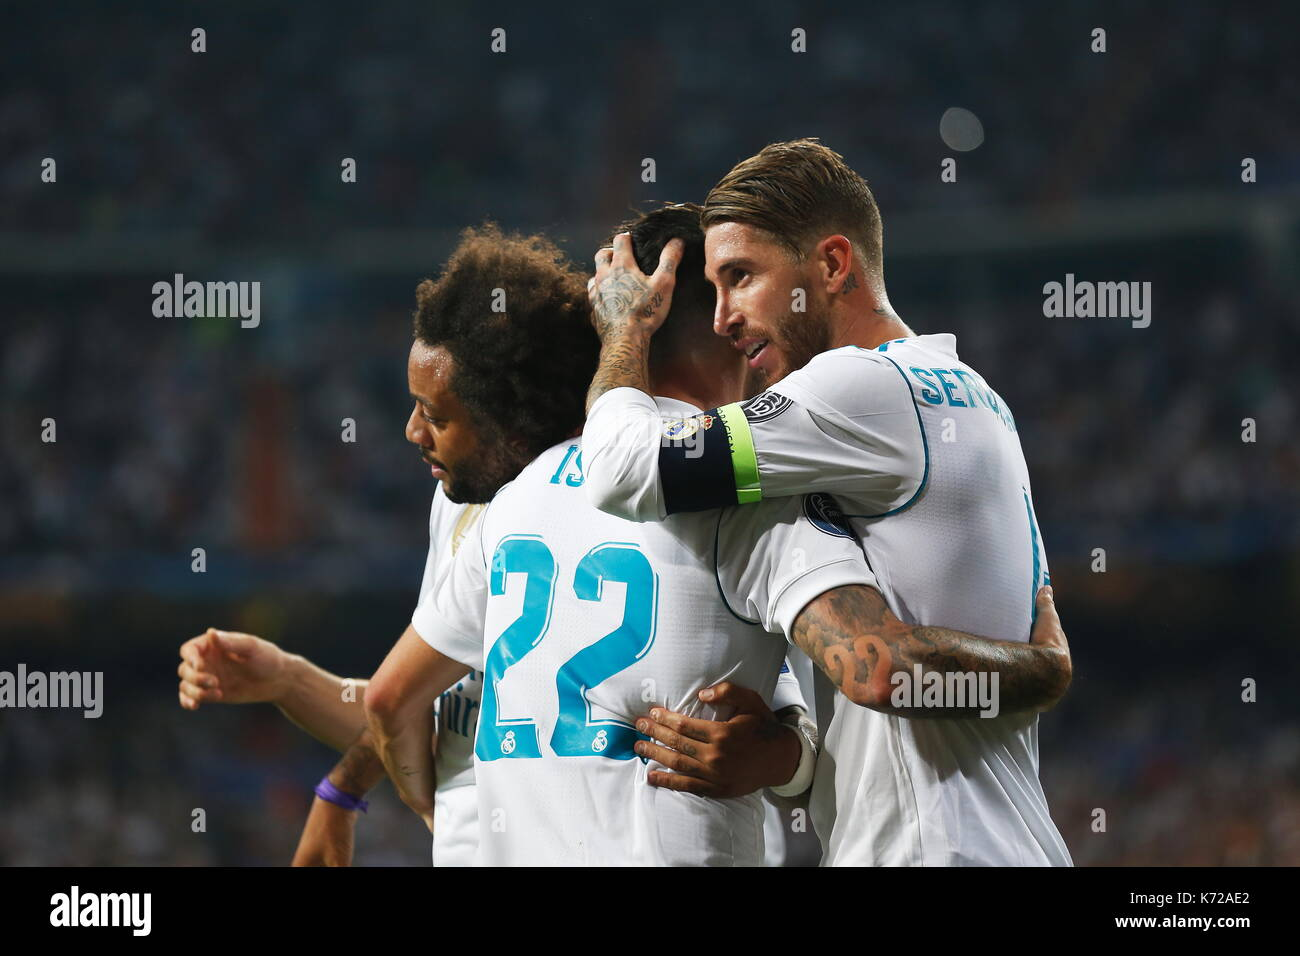 L R Real Madrid Players Stock Photos L R Real Madrid Players  # Muebles Getafe Butragueno